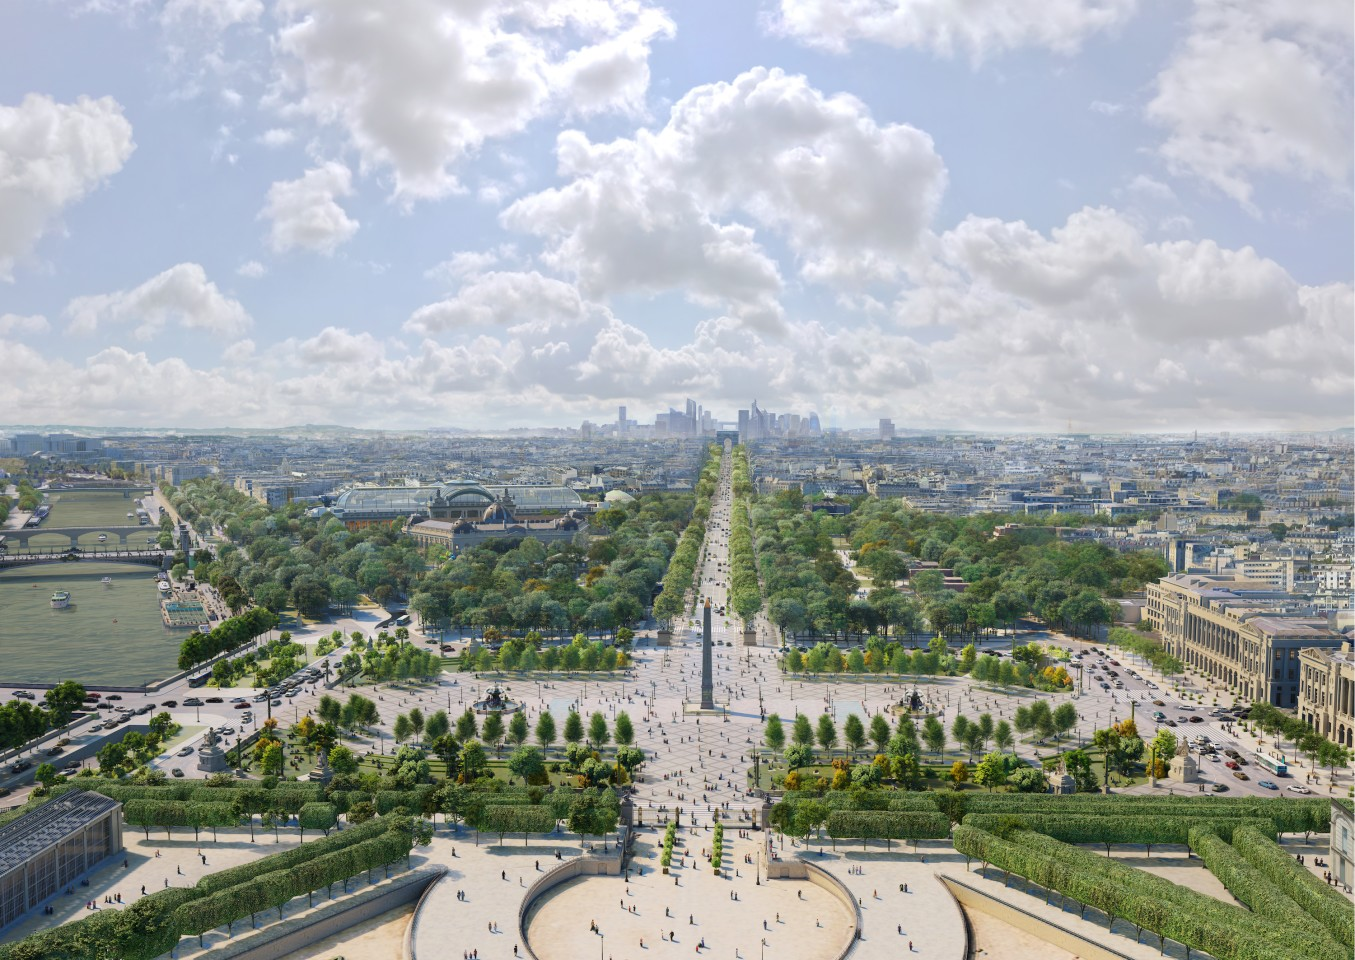 According to PCA-Stream, only 5 percent of visitors to the Champs-Élysées are actually Parisians, with the rest tourists. The firm hopes to attract locals back with its new scheme